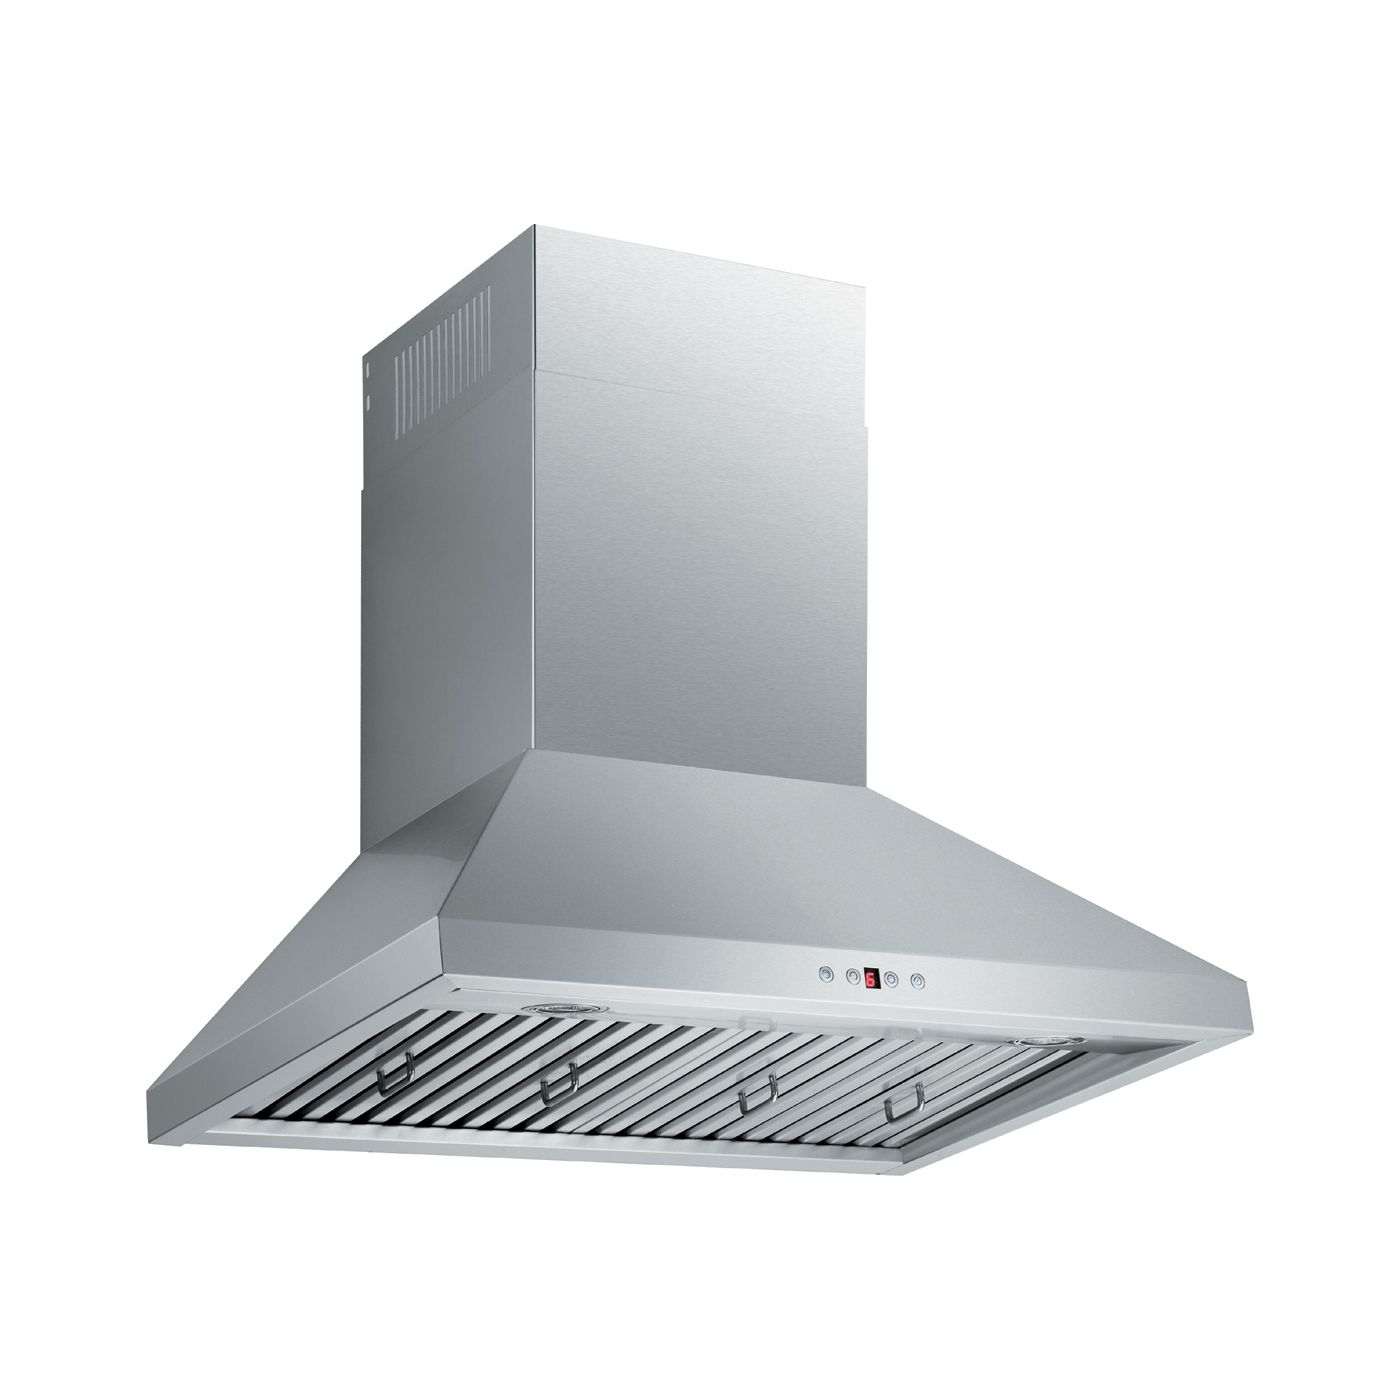 lowes kitchen hood experts shop maxair mxr b01 30 wall mounted range at lowe s canada find our selection of mount hoods the lowest price guaranteed with